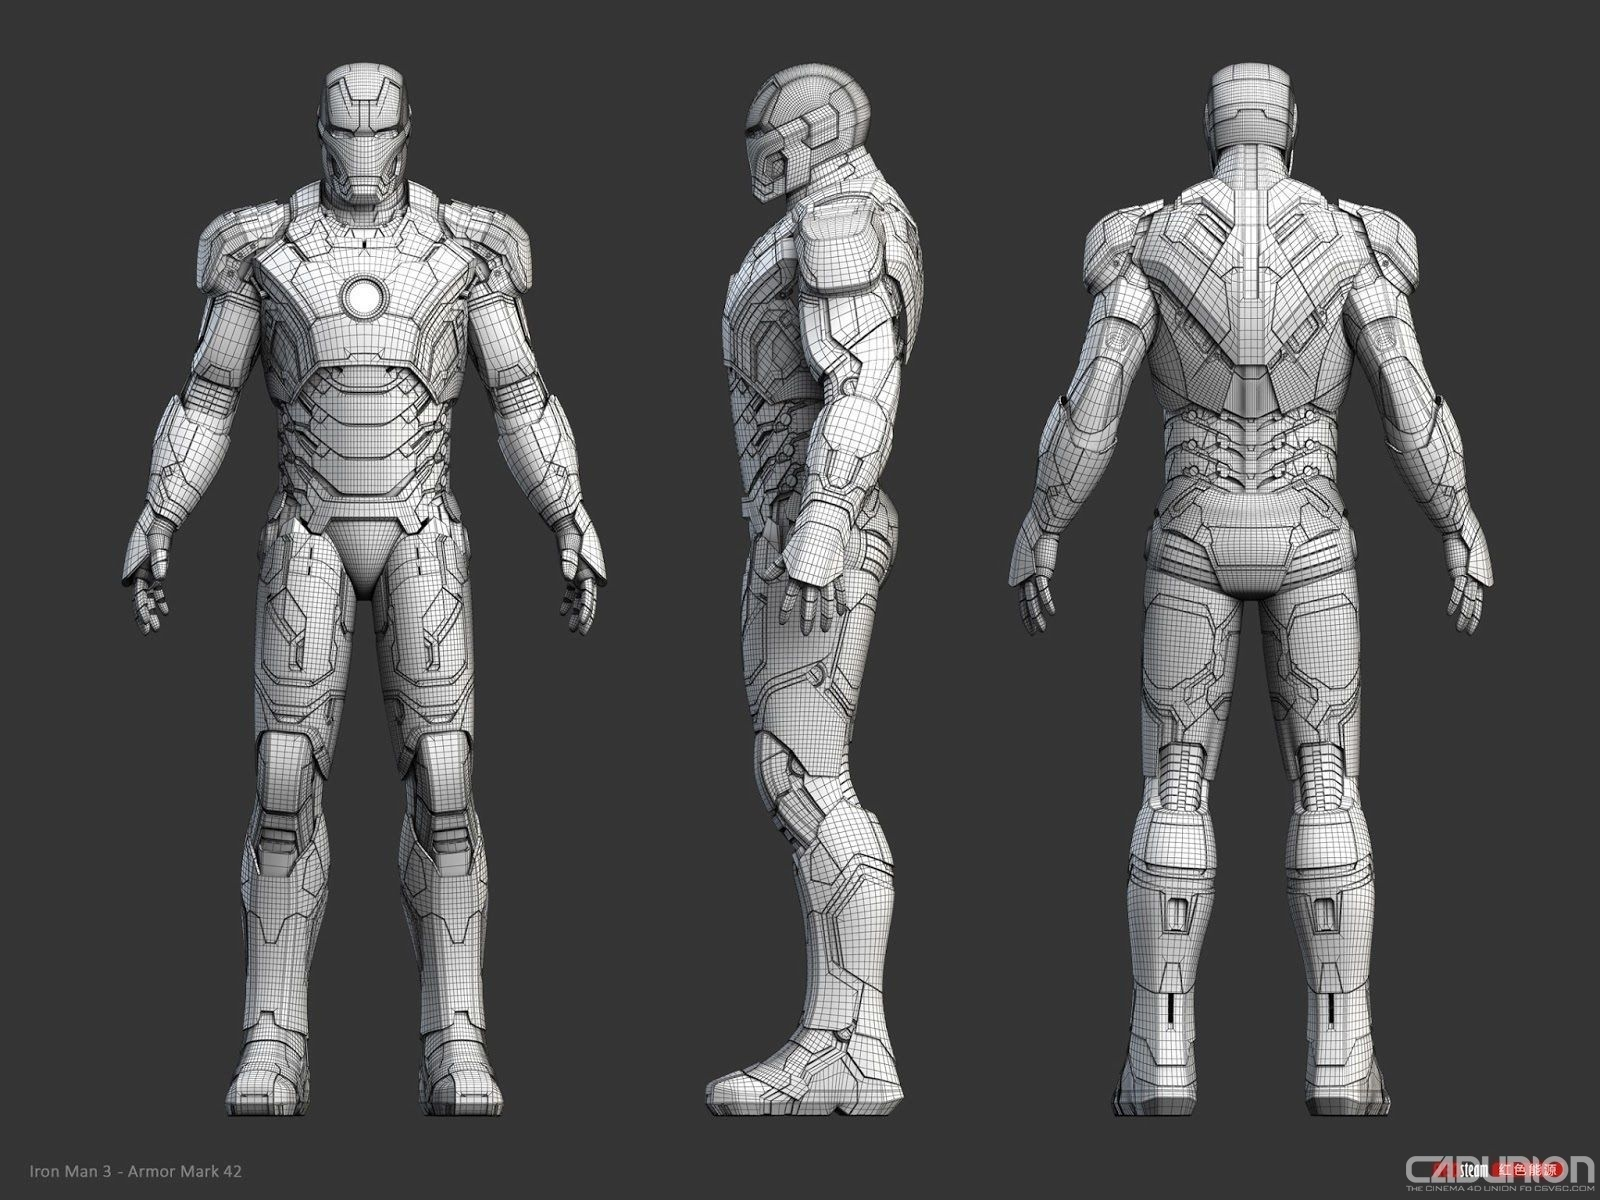 iron-man-model-3d-model-rigged-c4d.jpg